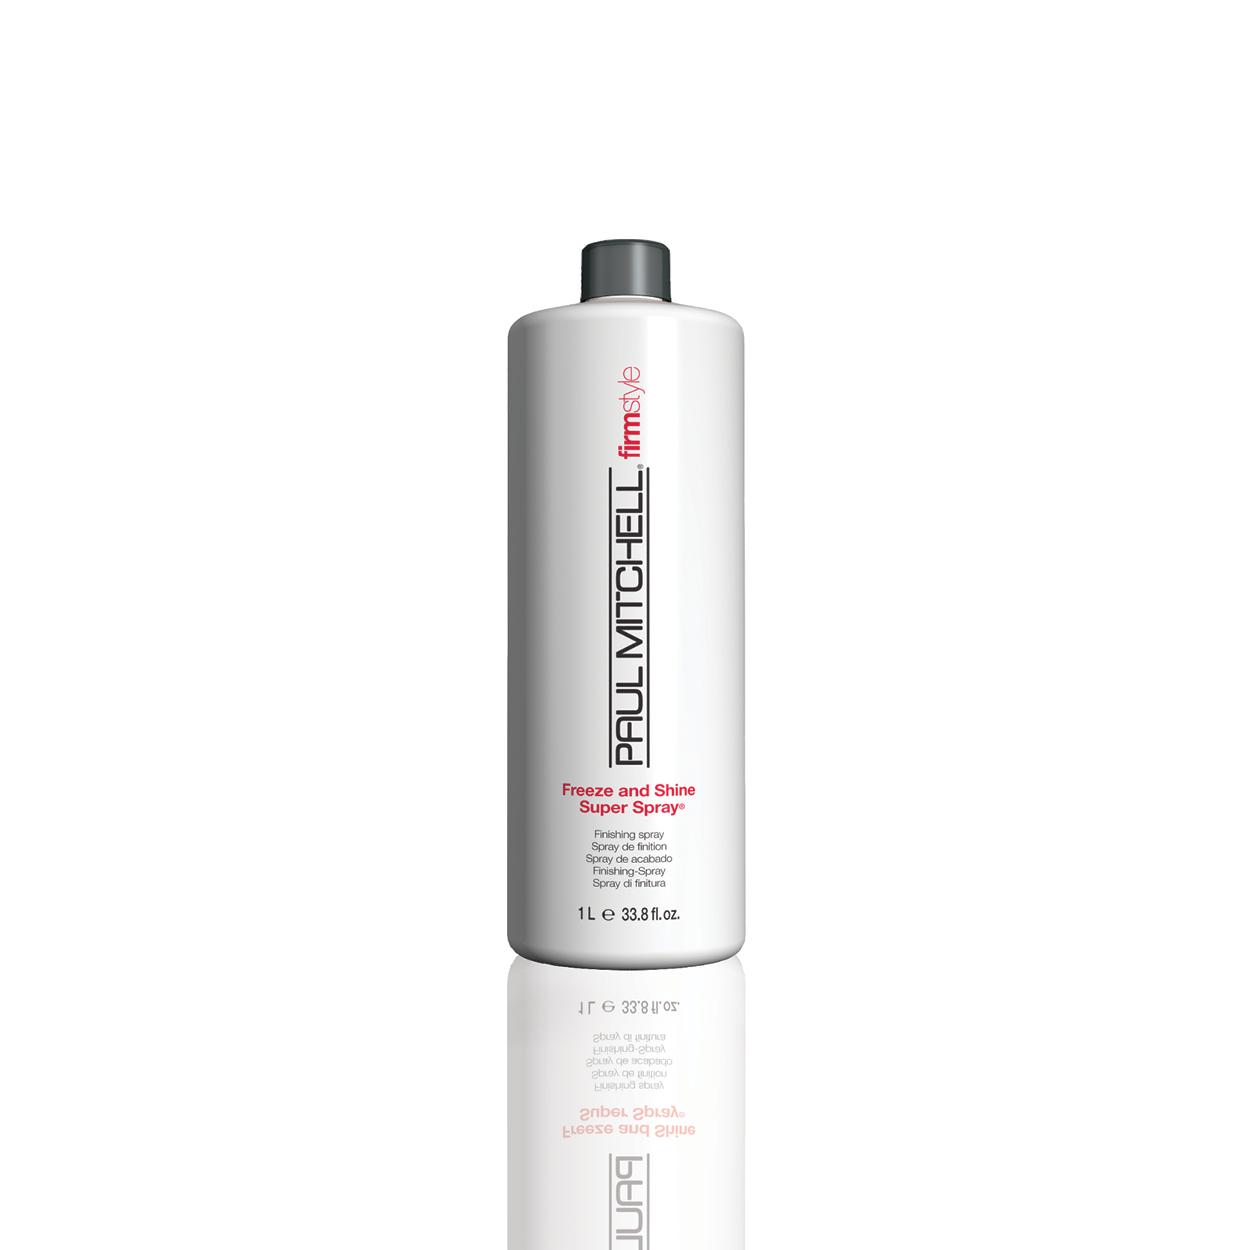 Paul Mitchell Freeze and Shine Super Spray 1 Litre